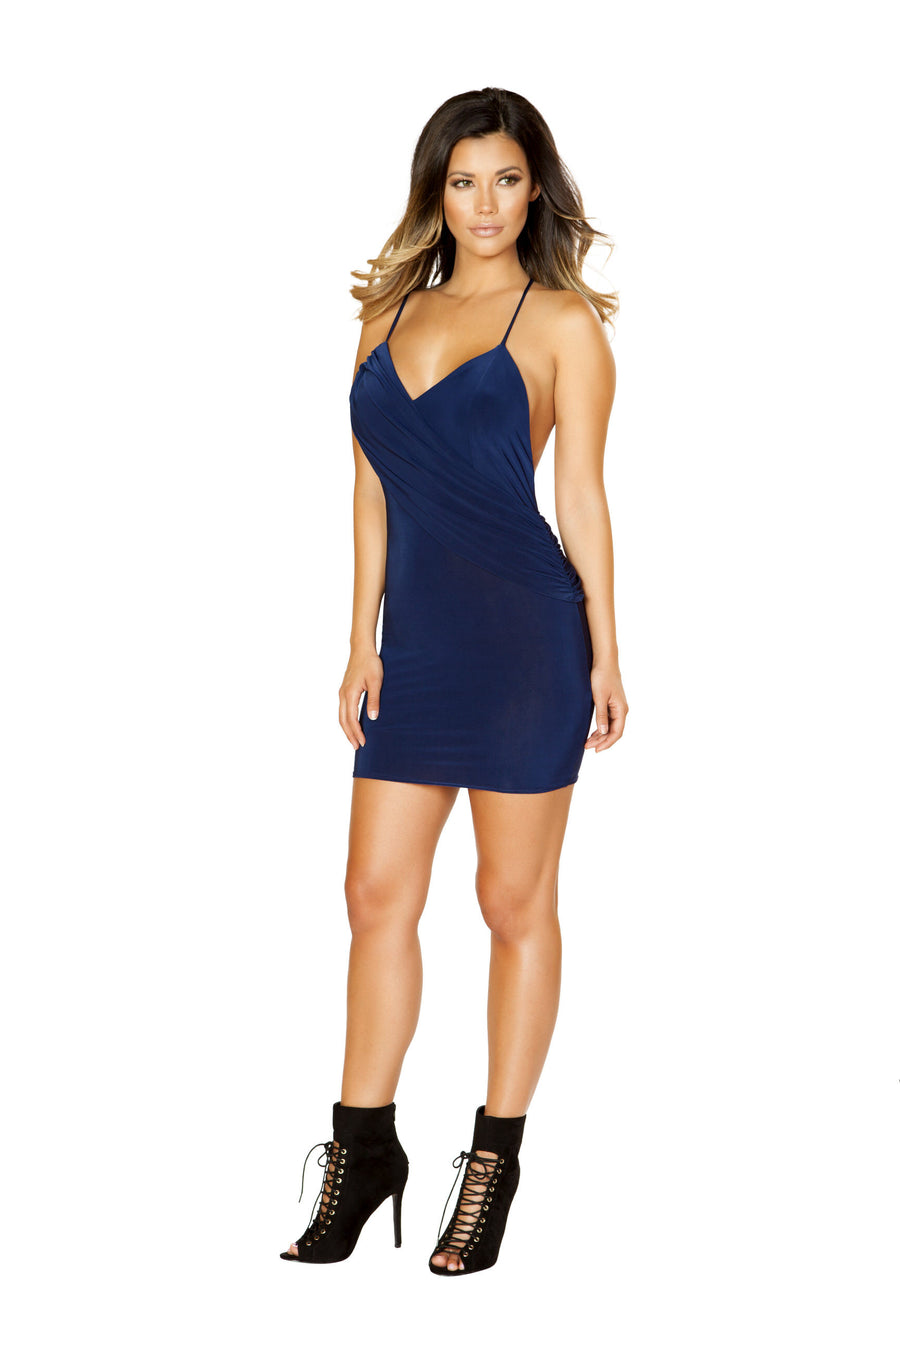 Mini Dress with Attached Overlap Panel - Mini Dresses, Roma - YourLamode